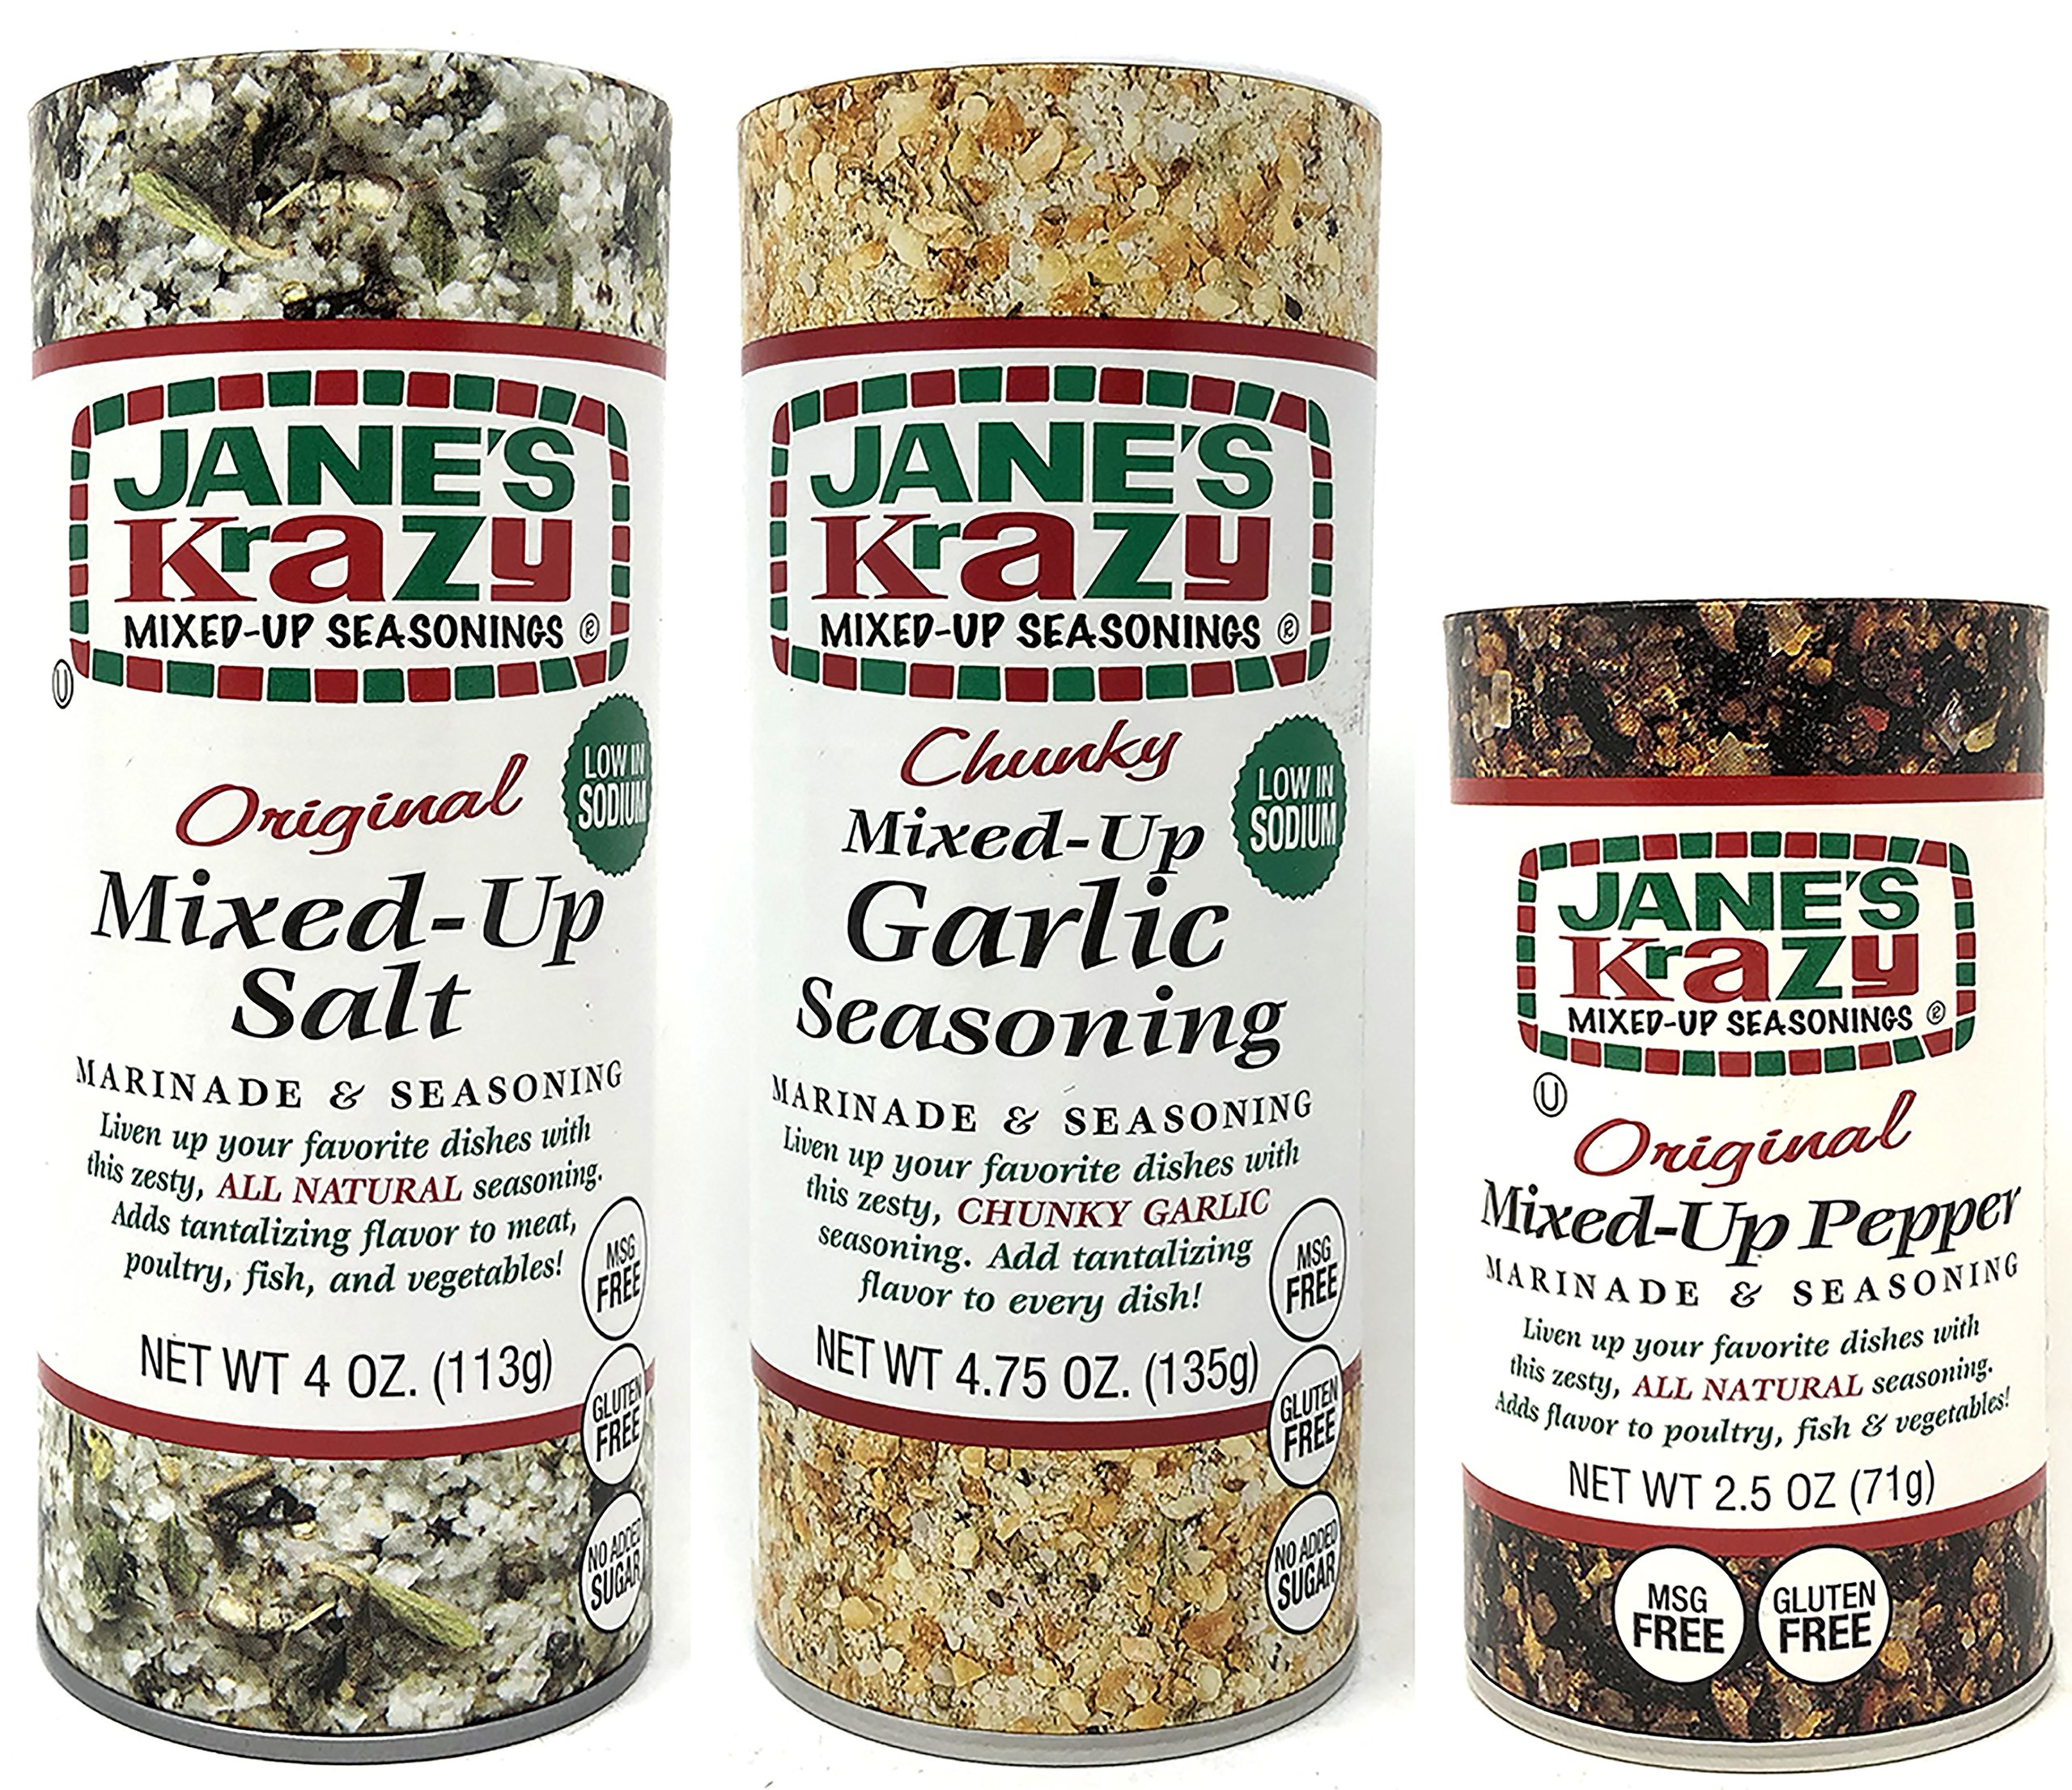 Jane's Krazy Mixed Up Seasonings Variety Pack of 3 - Mixed-Up Salt Pepper and Garlic